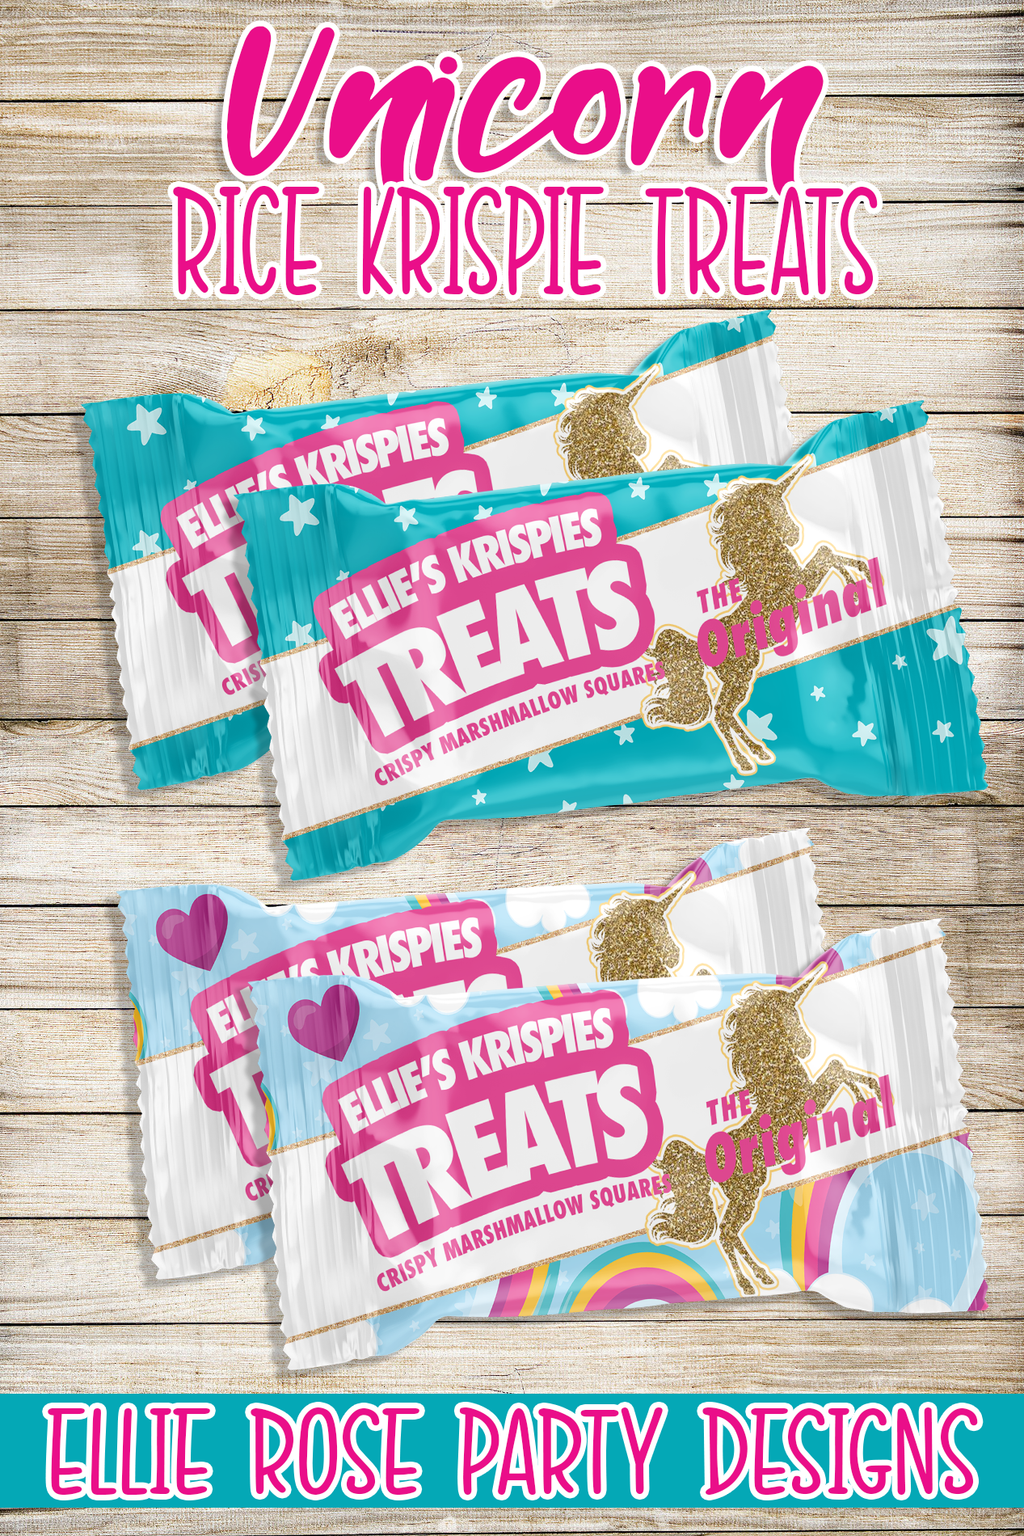 Unicorn Rice Krispie Treat party favors ideas